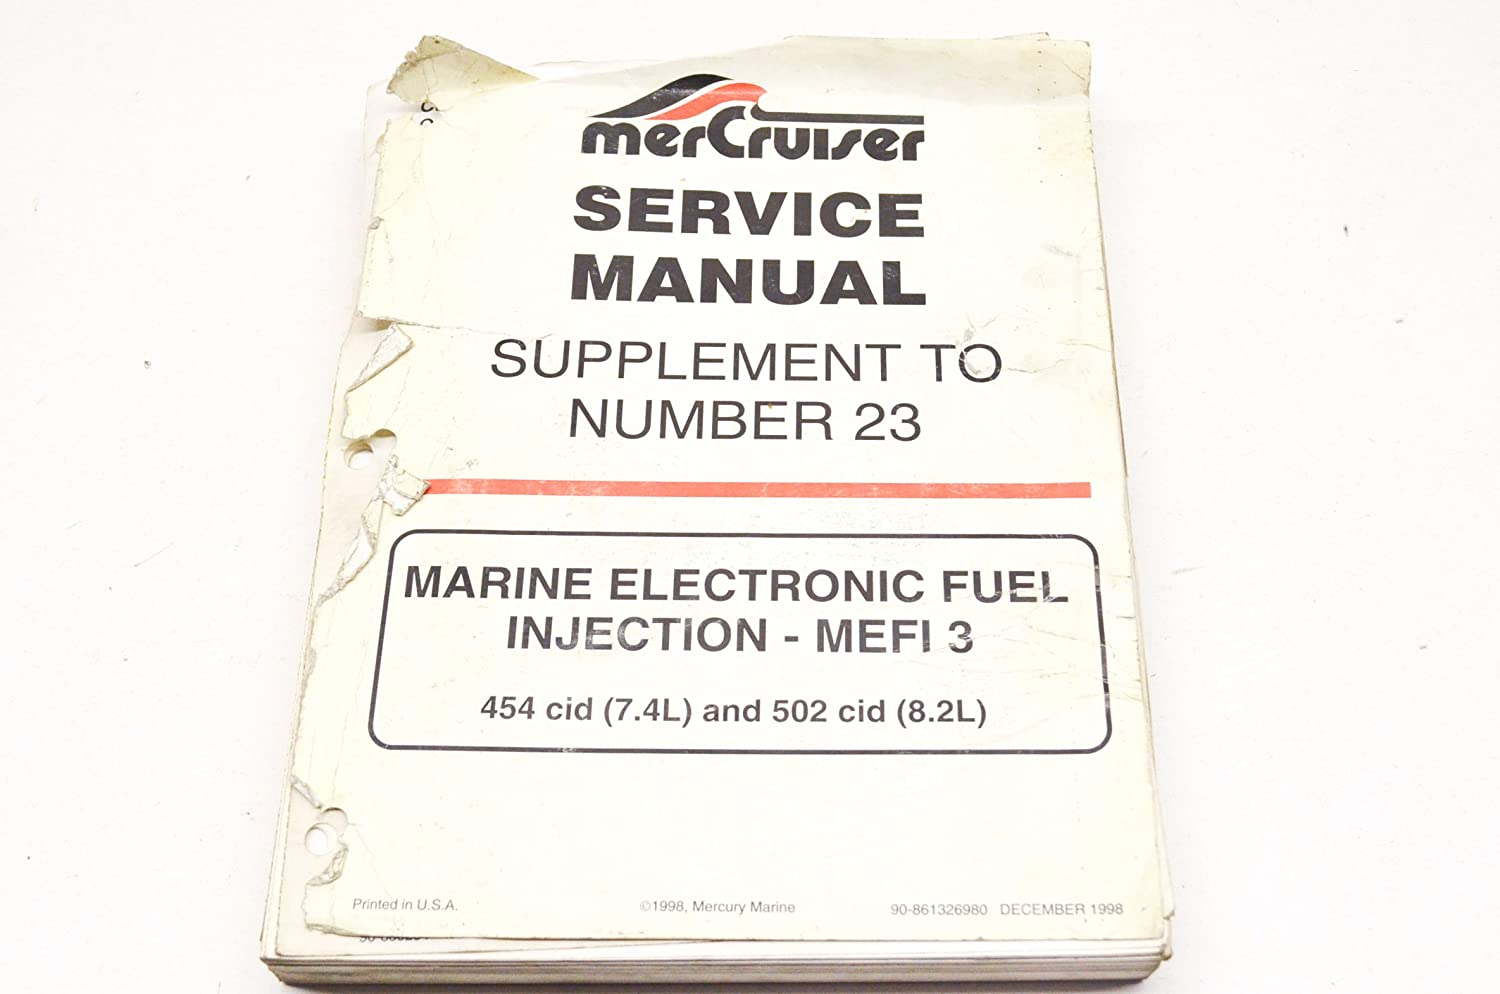 Amazon.com: Mercury 90-861326980 Mercury Marine Electronic Fuel Injection -  MEFI 3 454 cid (7.4L) and 502 cid (8.2L) Service Manual Supplement to  Number 23 ...